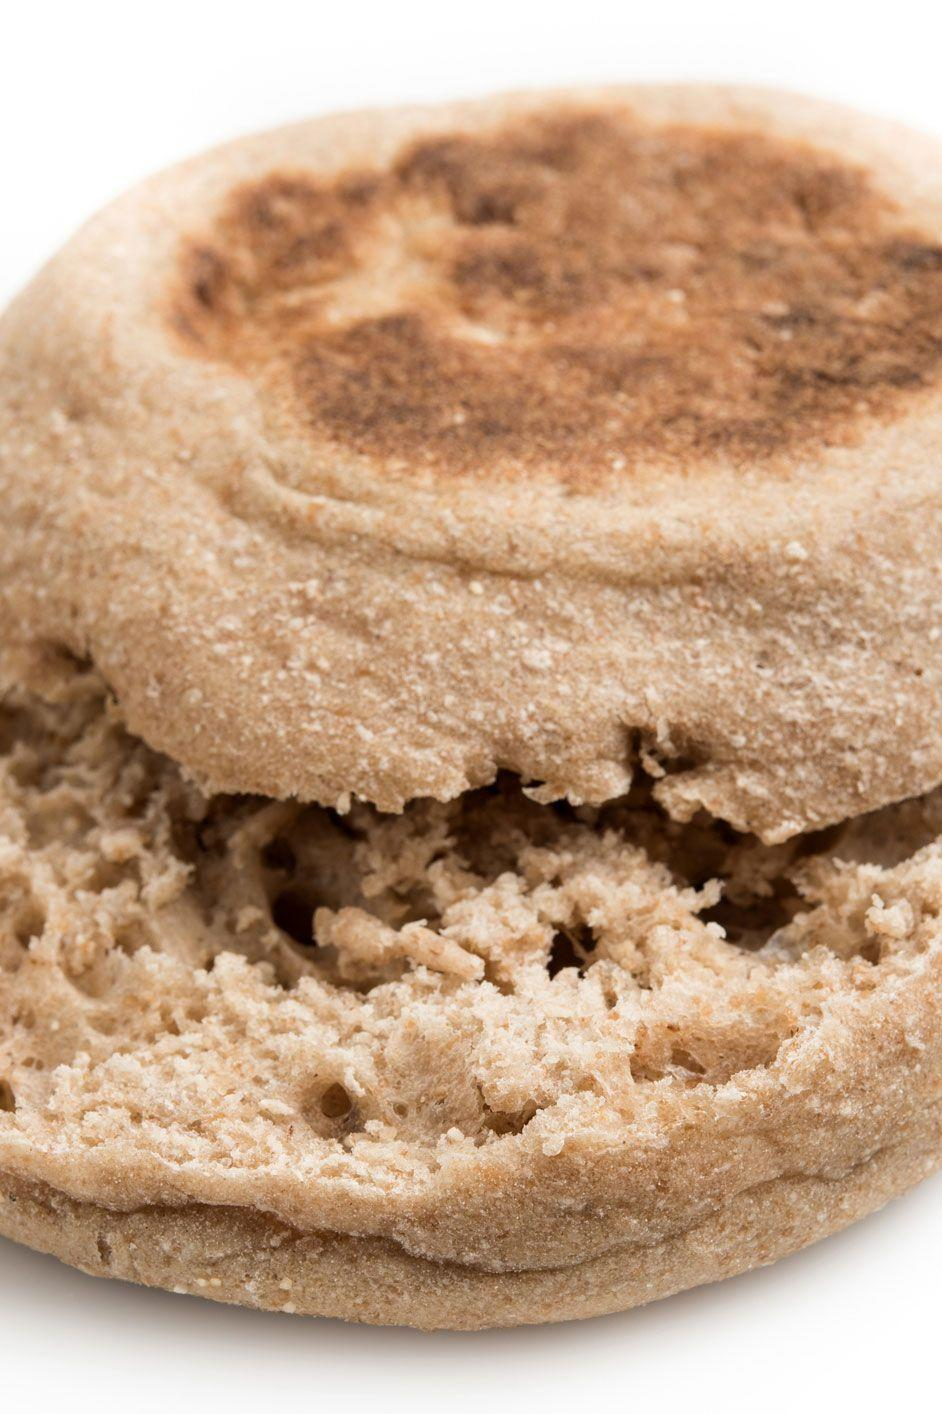 """<p>By pairing whole wheat English muffins with your morning eggs, you're getting 4 ½ grams of fiber for only 134 calories, according to the <a href=""""https://ndb.nal.usda.gov/ndb/foods/show/18266?max=25&sort=default&order=asc&qlookup=Whole+Wheat+English+Muffins"""" rel=""""nofollow noopener"""" target=""""_blank"""" data-ylk=""""slk:USDA"""" class=""""link rapid-noclick-resp"""">USDA</a>.</p><p><strong>Recipe to try:</strong> <a href=""""https://www.womansday.com/food-recipes/food-drinks/recipes/a12511/peanut-butter-jelly-muffins-recipe-wdy0214/"""" rel=""""nofollow noopener"""" target=""""_blank"""" data-ylk=""""slk:Peanut Butter and Jelly Muffins"""" class=""""link rapid-noclick-resp"""">Peanut Butter and Jelly Muffins</a></p>"""